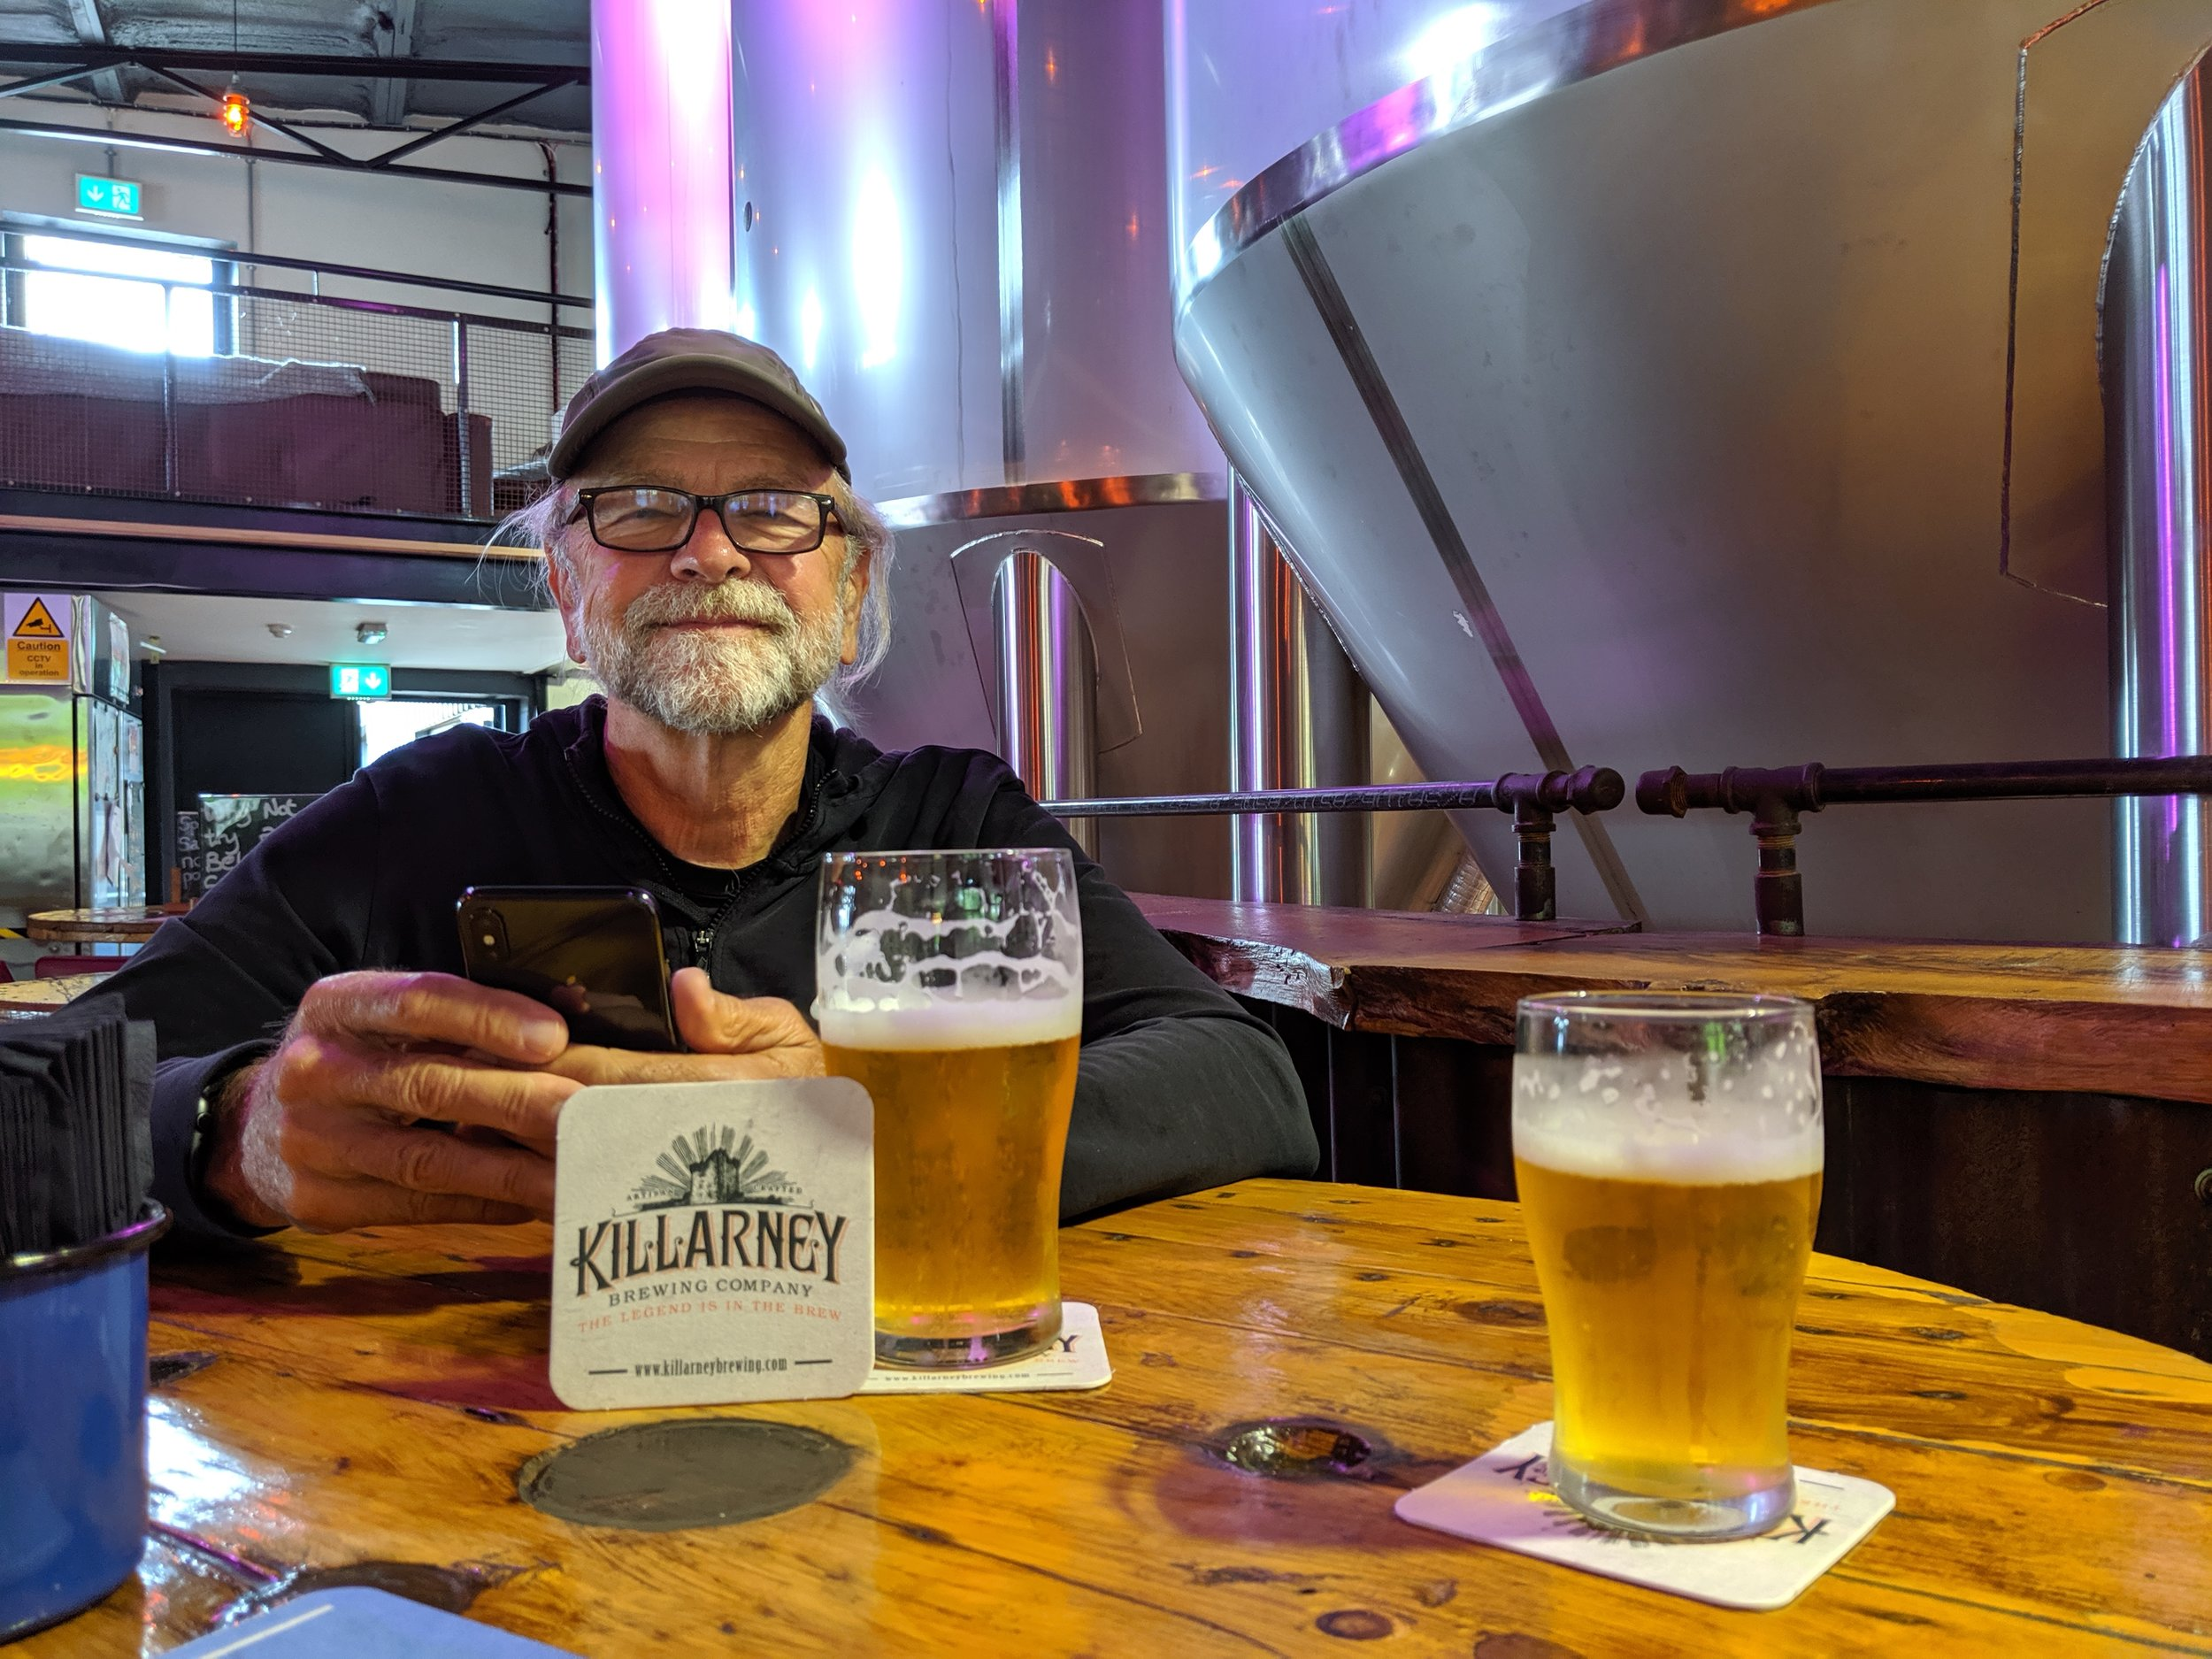 Another brewery that we really liked was a small operation called the Killarney Brewing Company. They brewed an excellent Belgium Ale.